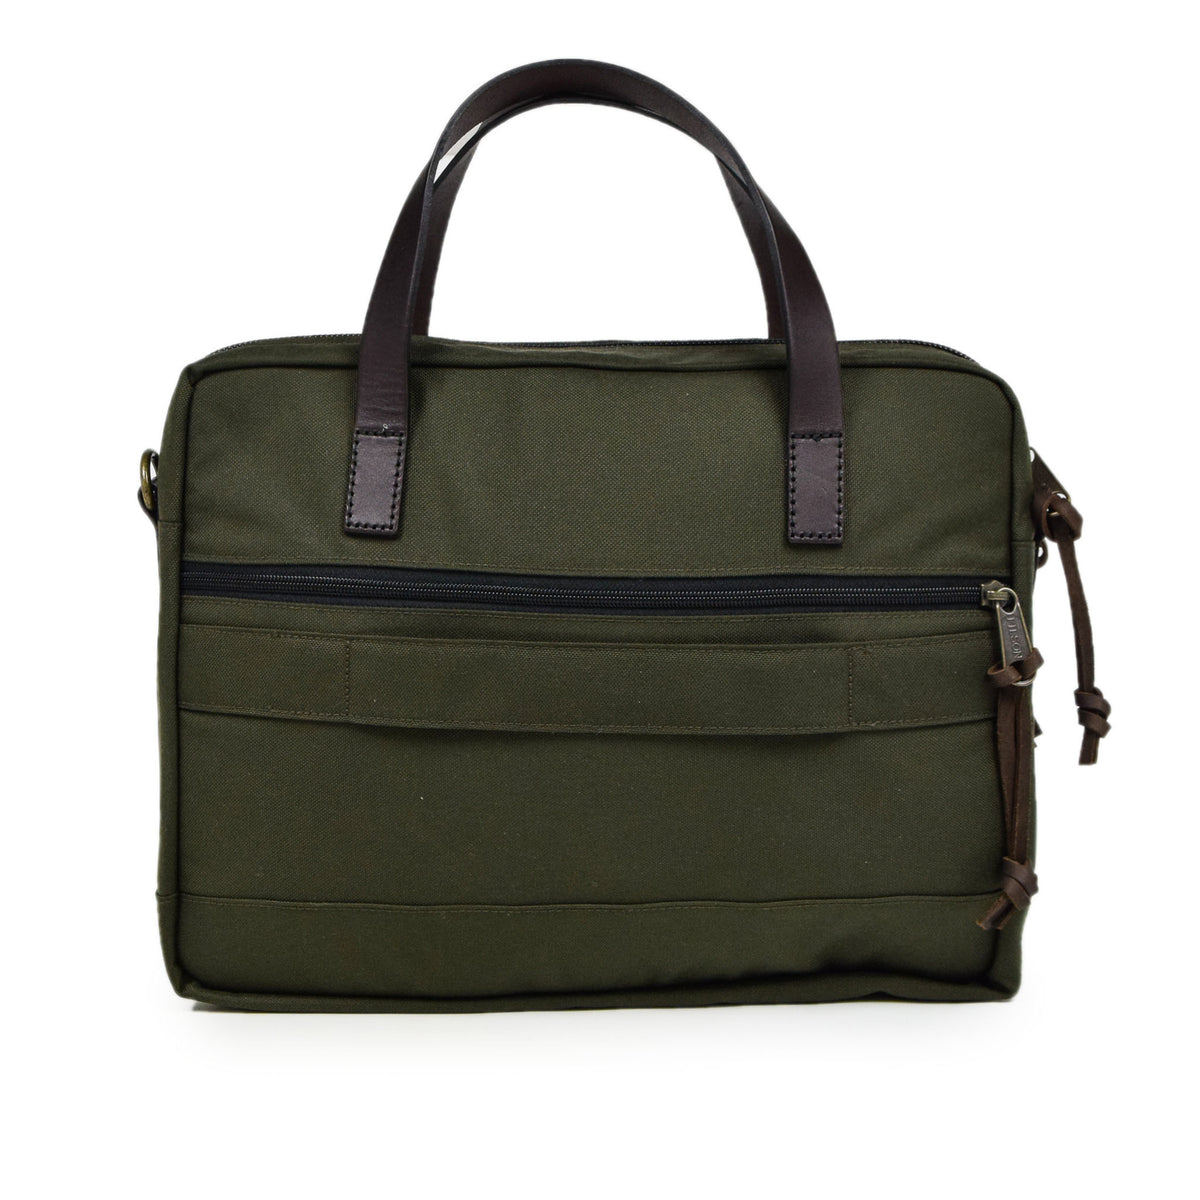 Filson Dryden Briefcase Shoulder Bag Otter Green Back